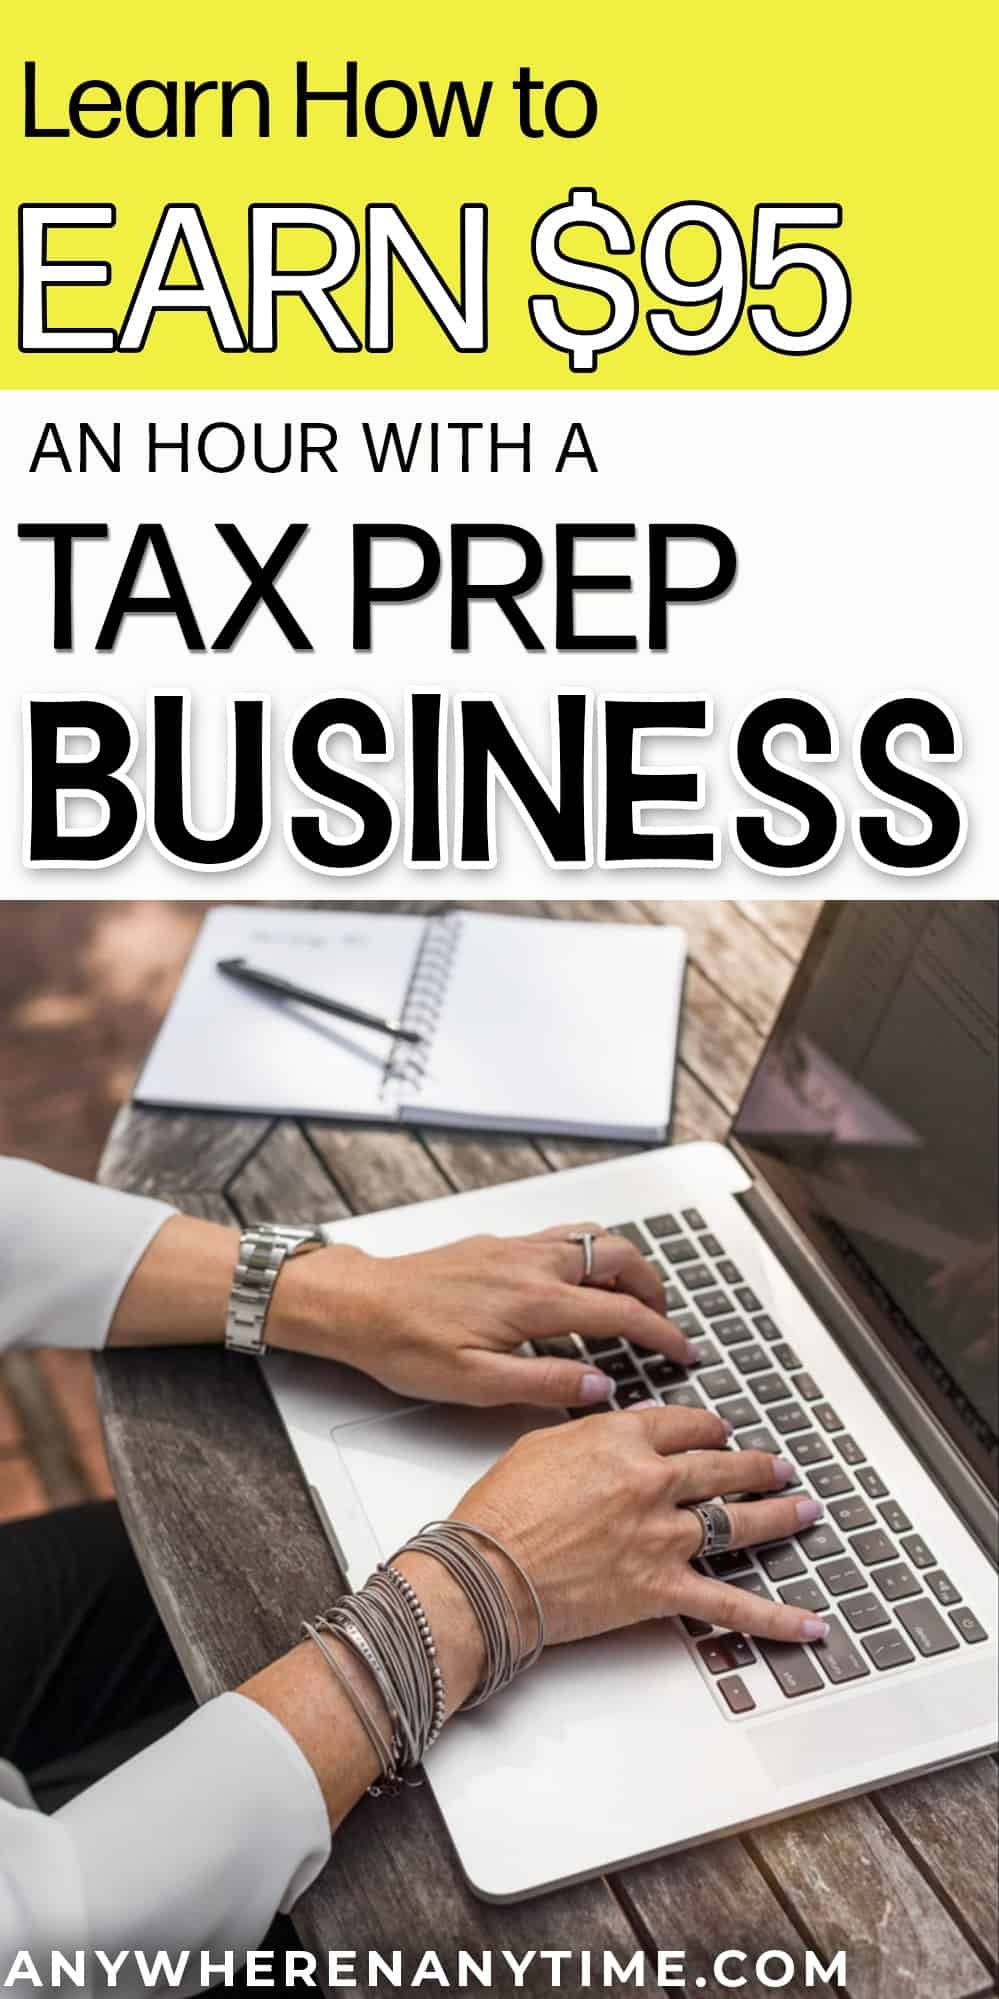 FIND YOUR FOUR MONTH FIX WITH TAXBIZ!